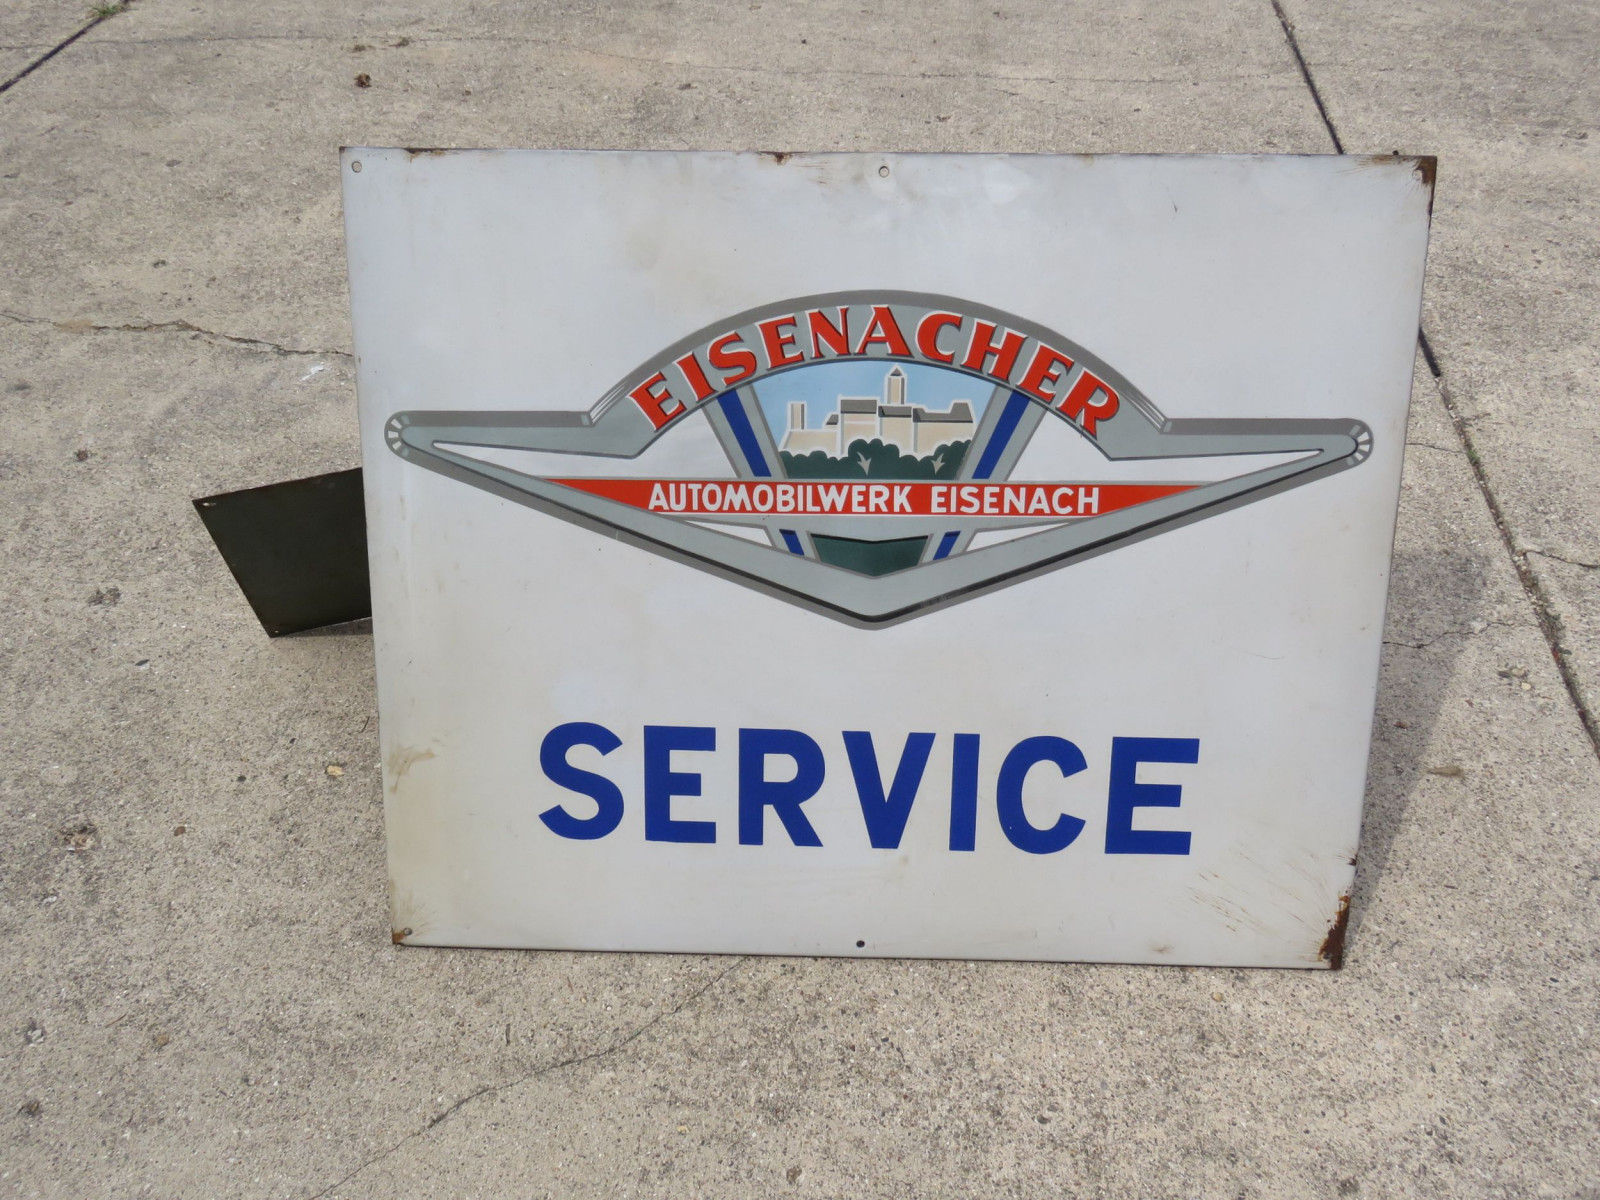 Eisenacher Service Porcelain Sign - Image 1